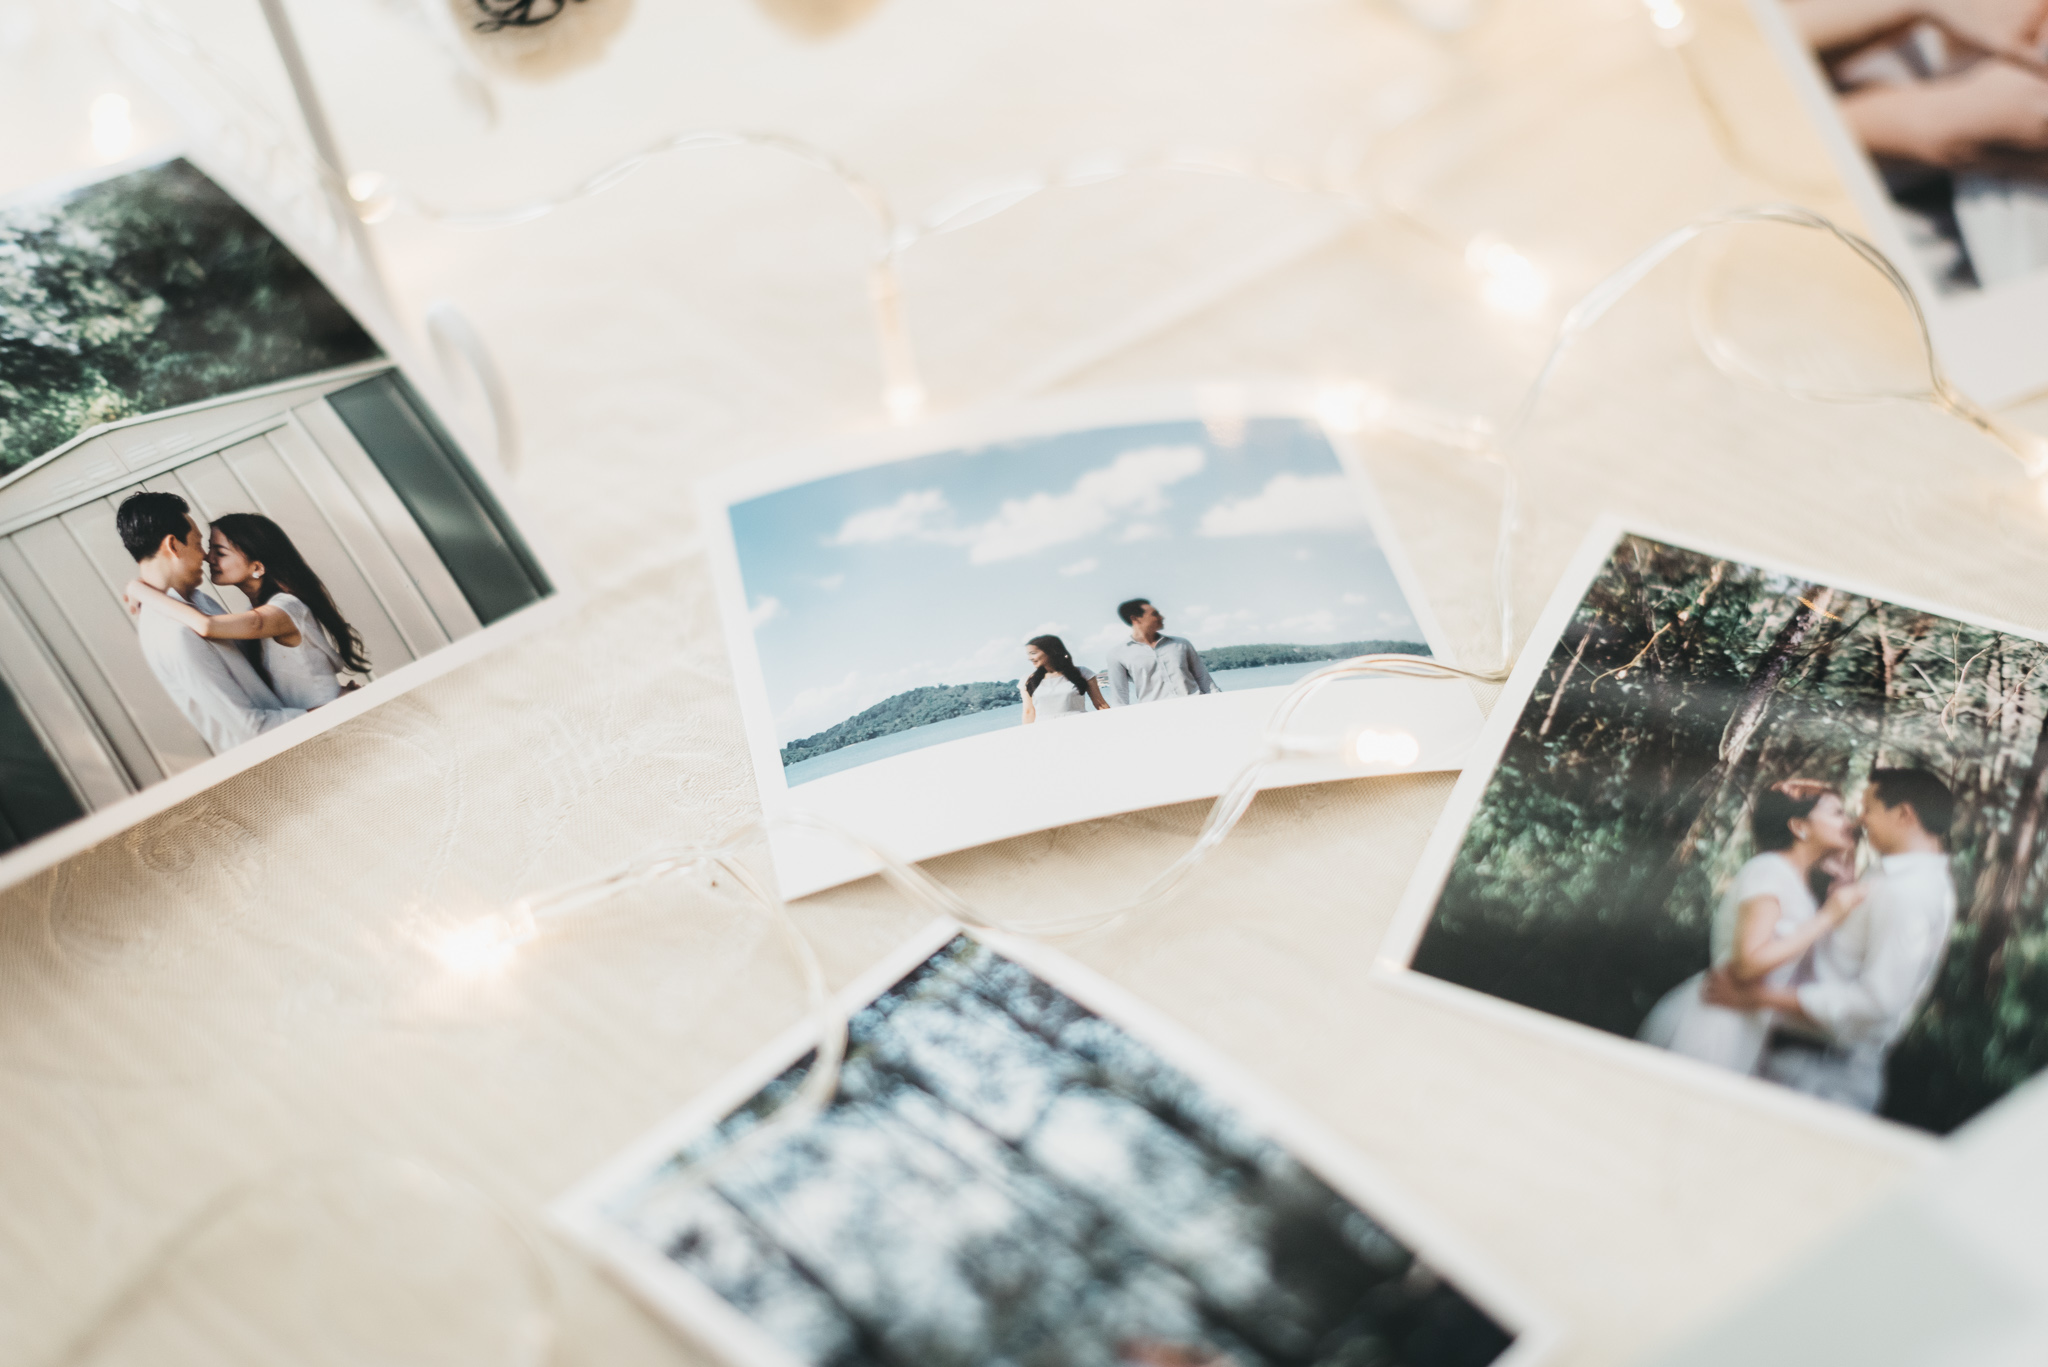 Fiona & Terence Wedding Day Highlights (resized for sharing) - 193.jpg